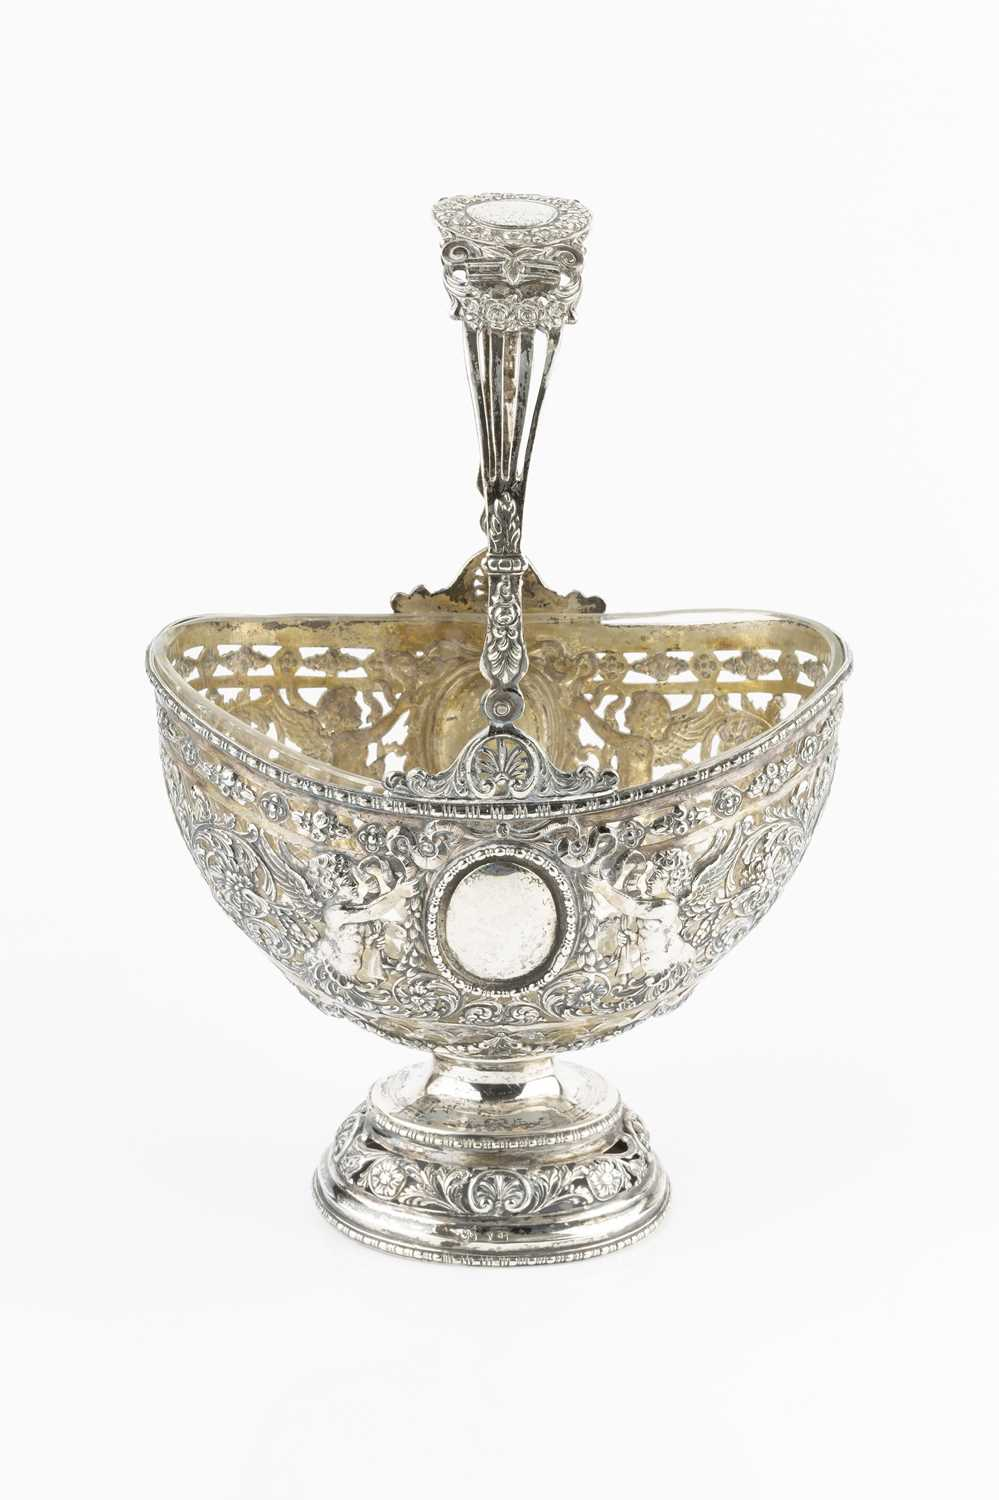 A late 19th century Hanau silver basket, of swing handled oval form, pierced and embossed with putti